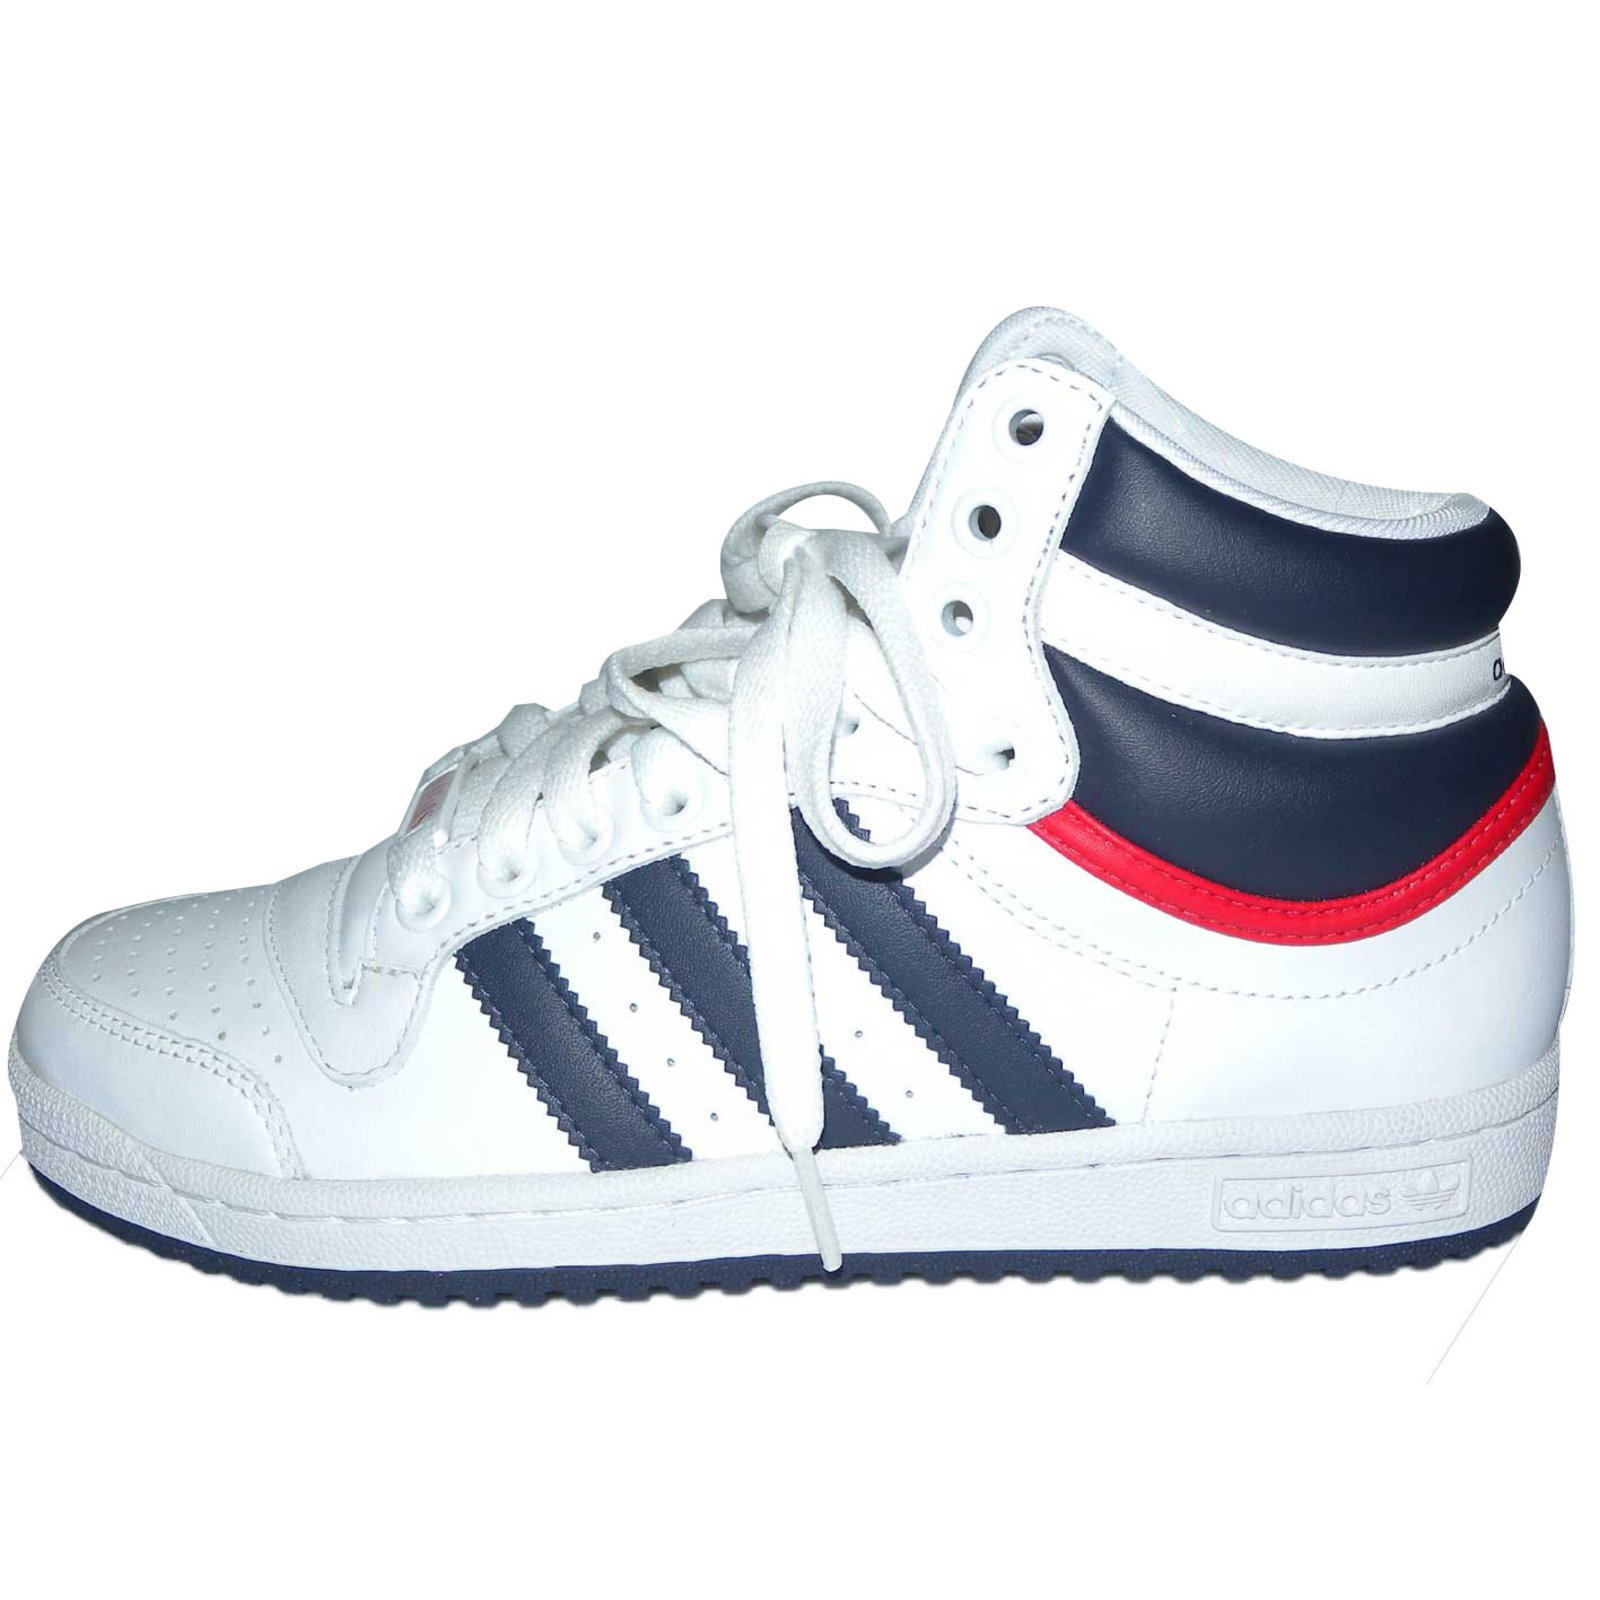 adidas top ten or